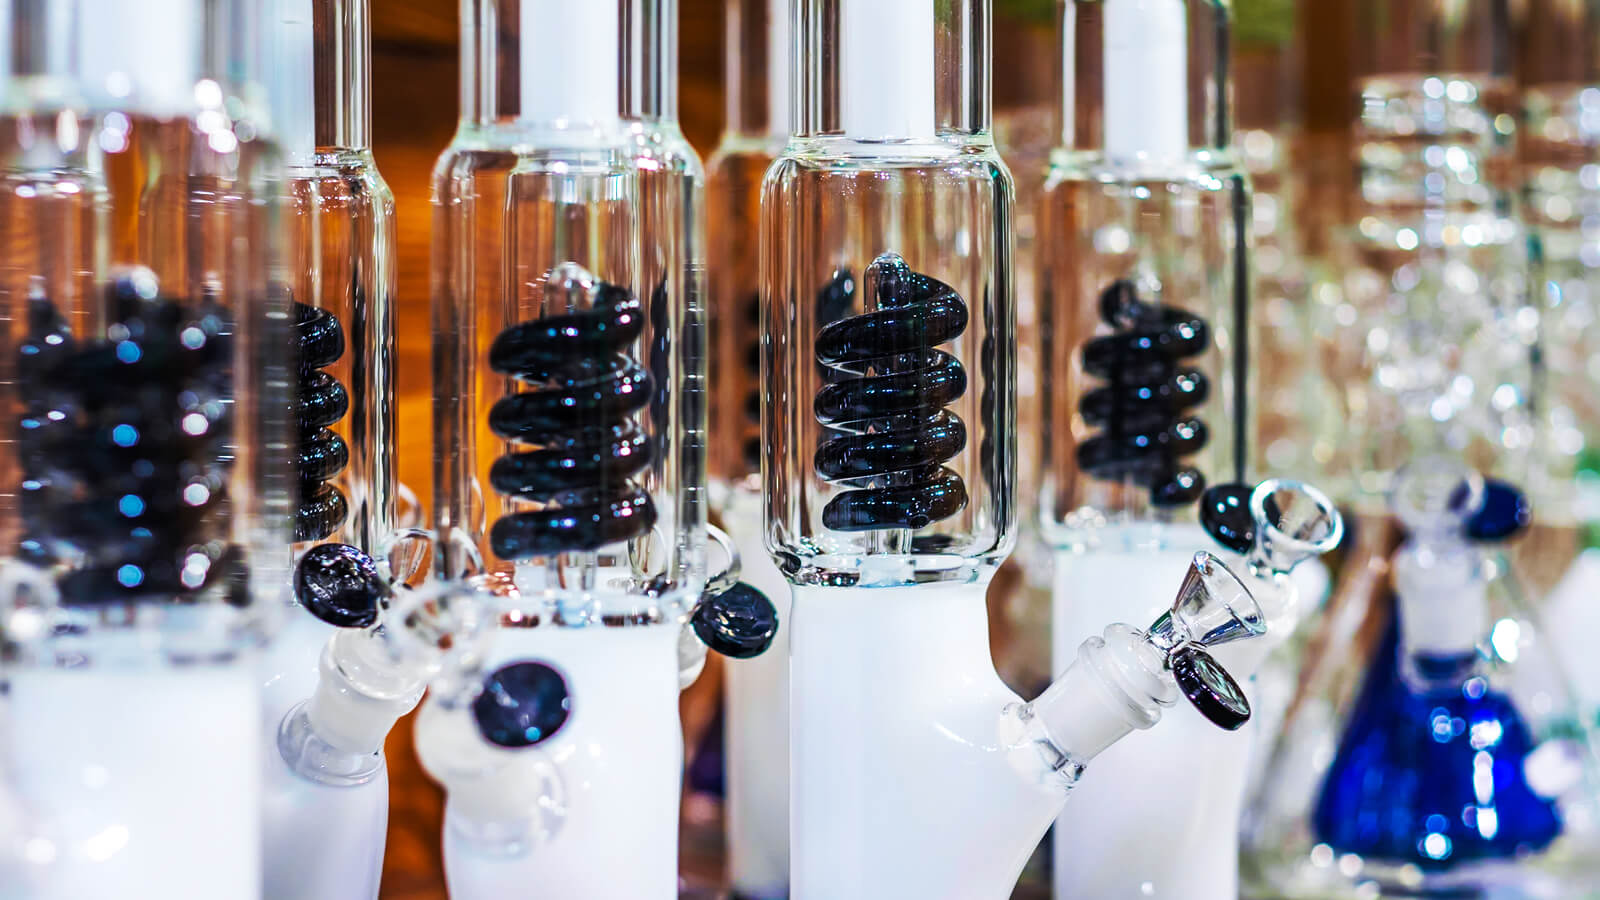 YOUR TRUSTED GEAR - BONGS & DABS